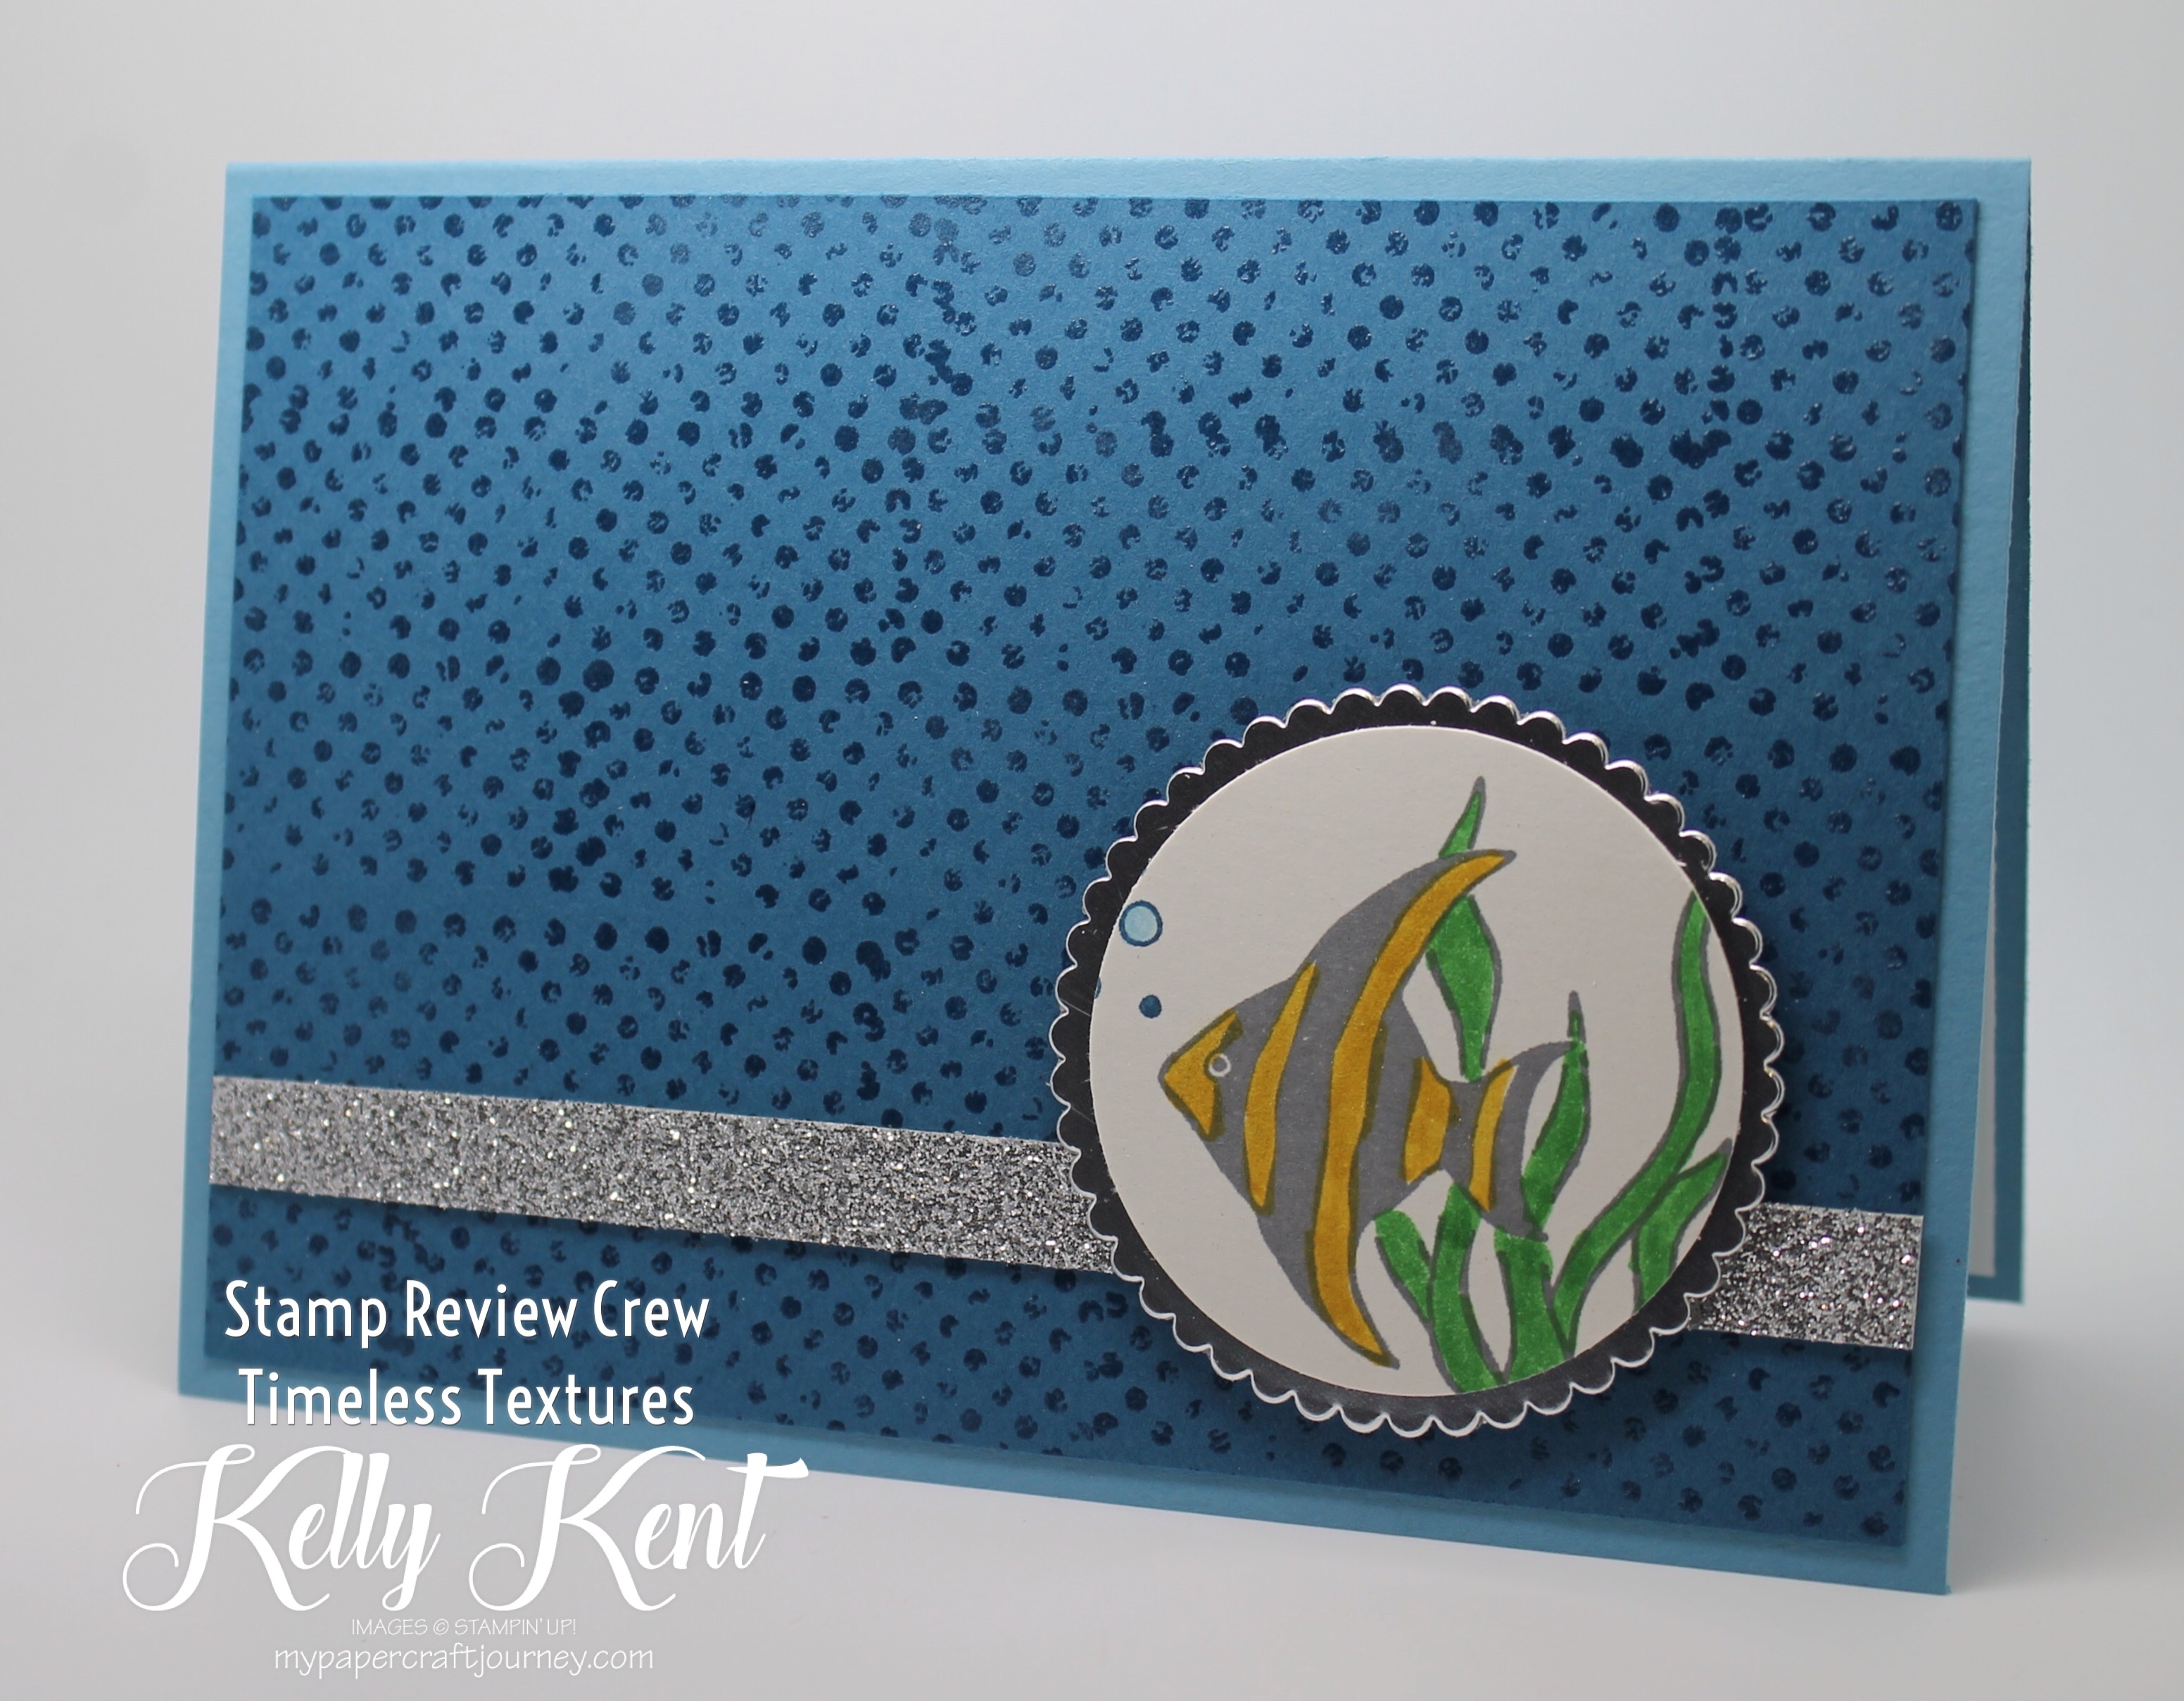 Stamp Review Crew - Timeless Textures. Kelly Kent - mypapercraftjourney.com.